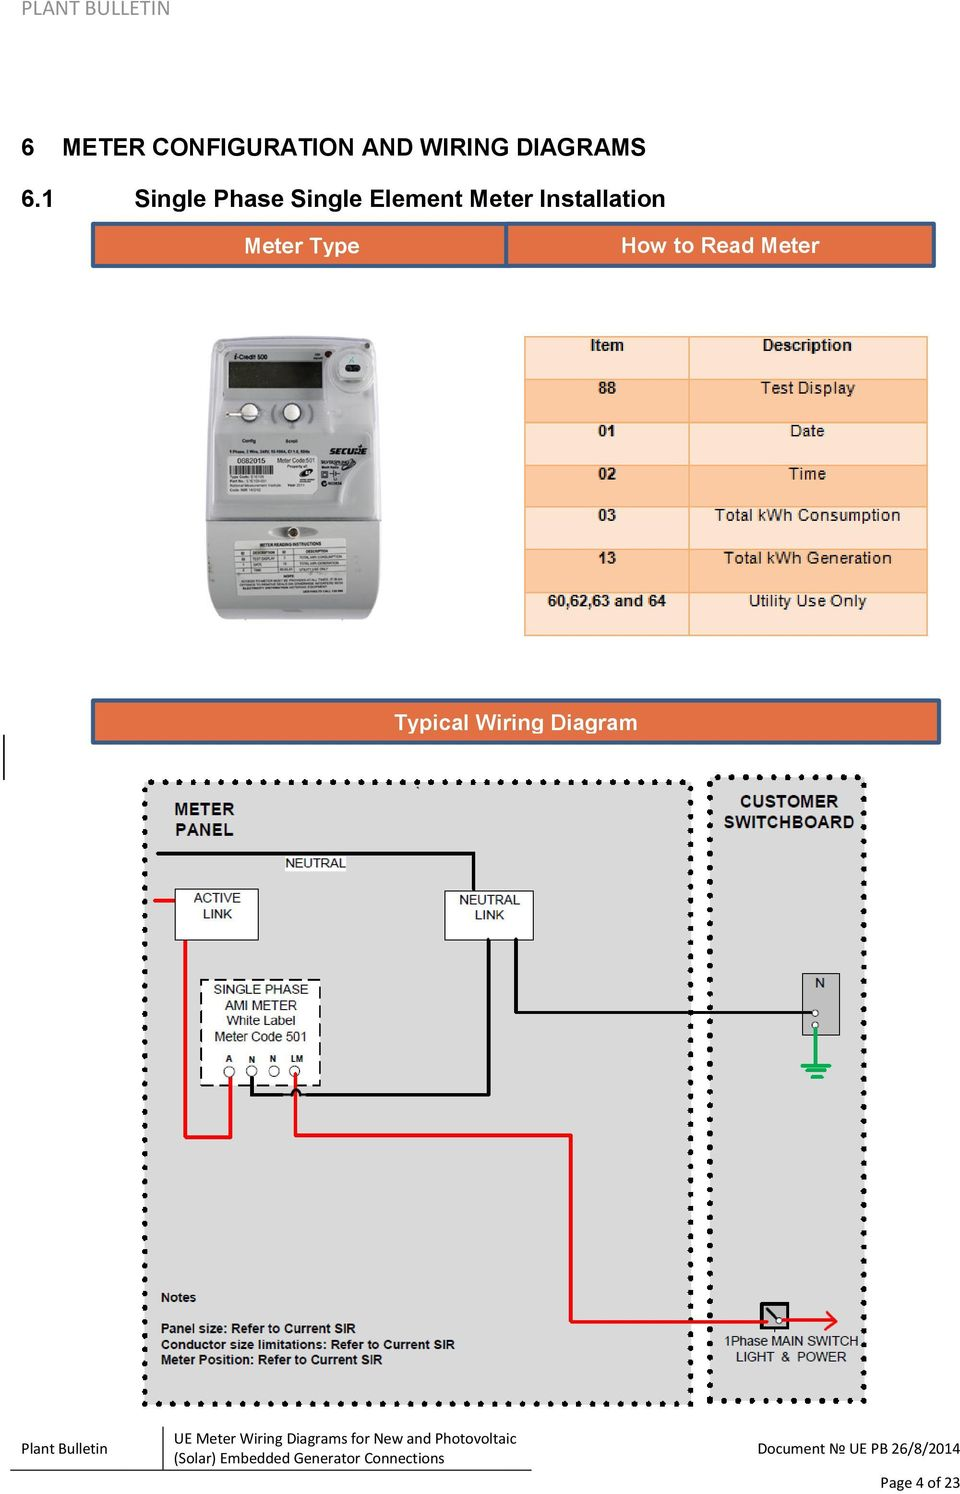 ue plant bulletin ue meter wiring diagrams for new and. Black Bedroom Furniture Sets. Home Design Ideas